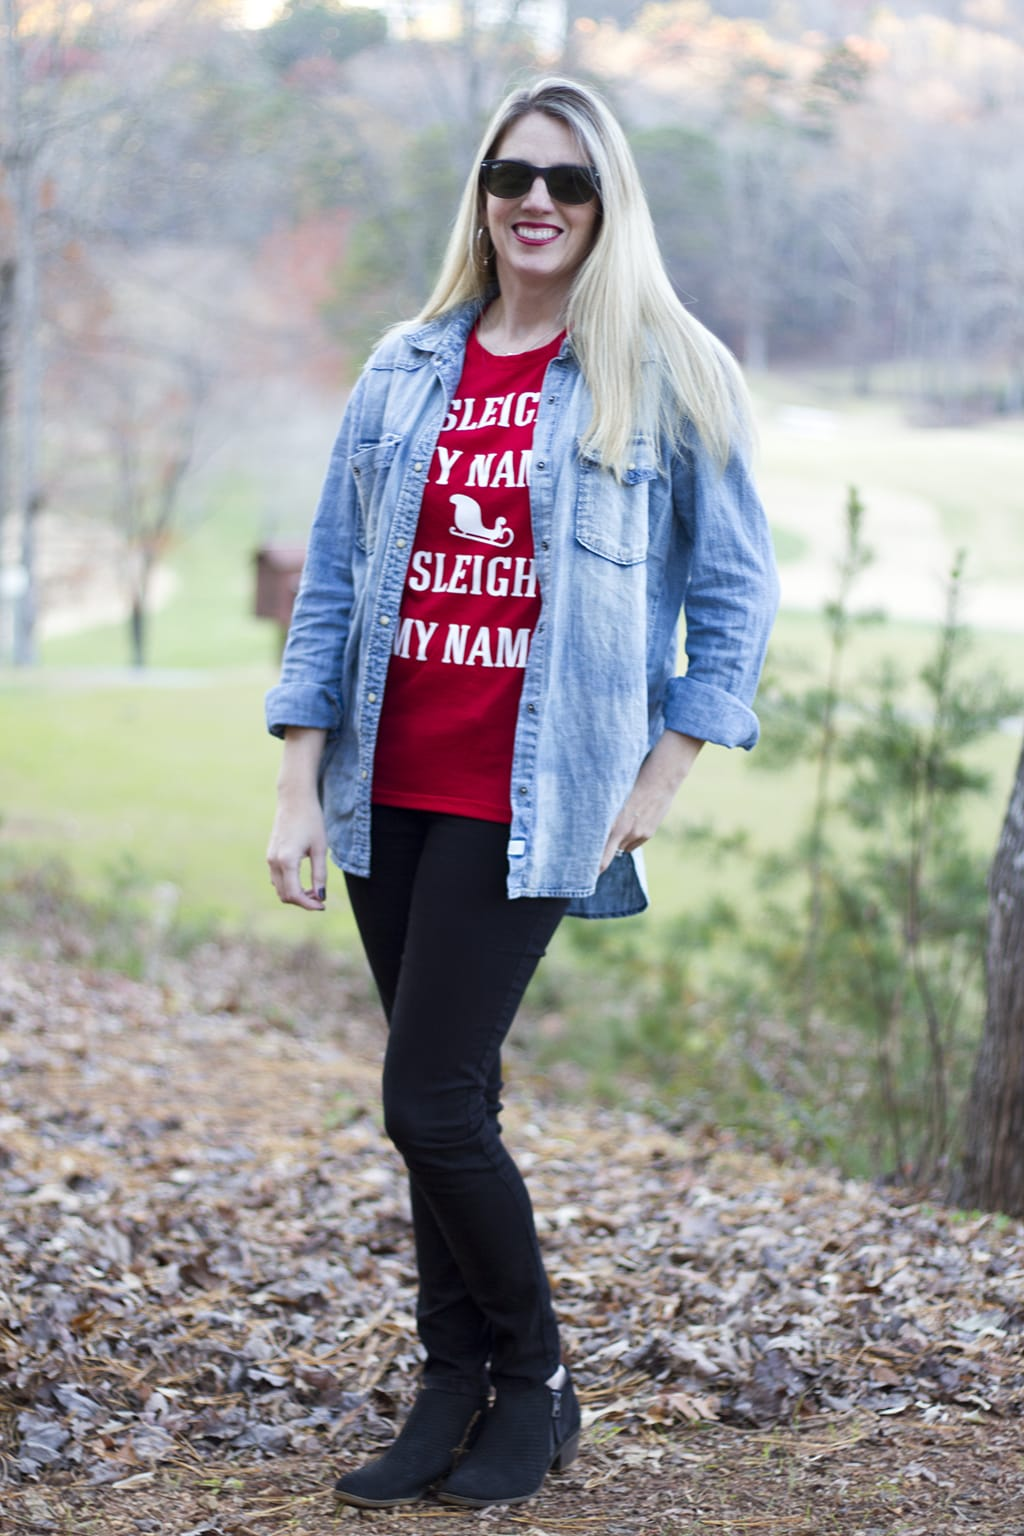 woman with blond hair wearing denim shirt and red graphic holiday tee